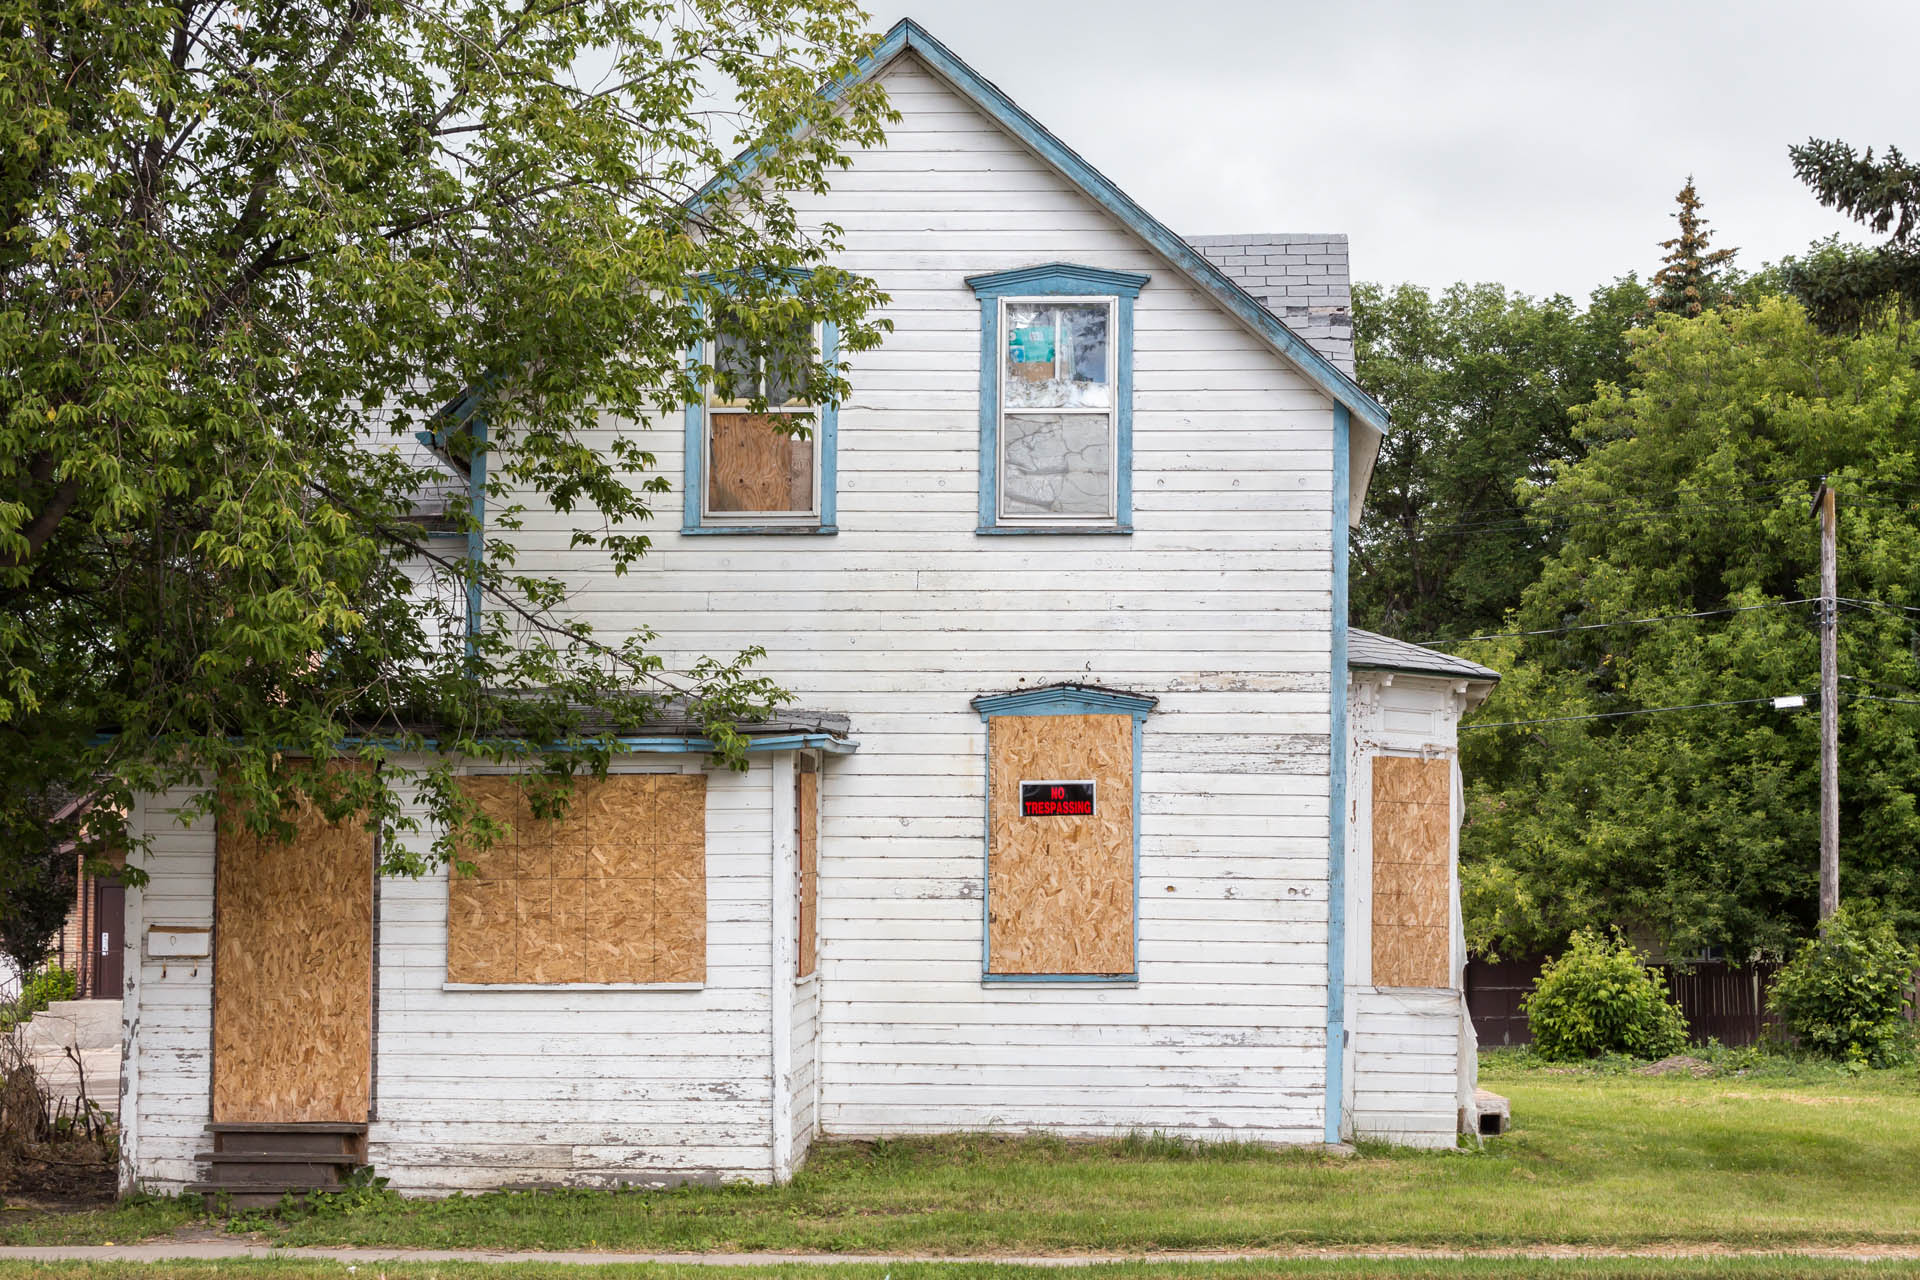 5 Surprisingly Quick Fixes If You Want To Buy A Fixer Upper Interiors Inside Ideas Interiors design about Everything [magnanprojects.com]